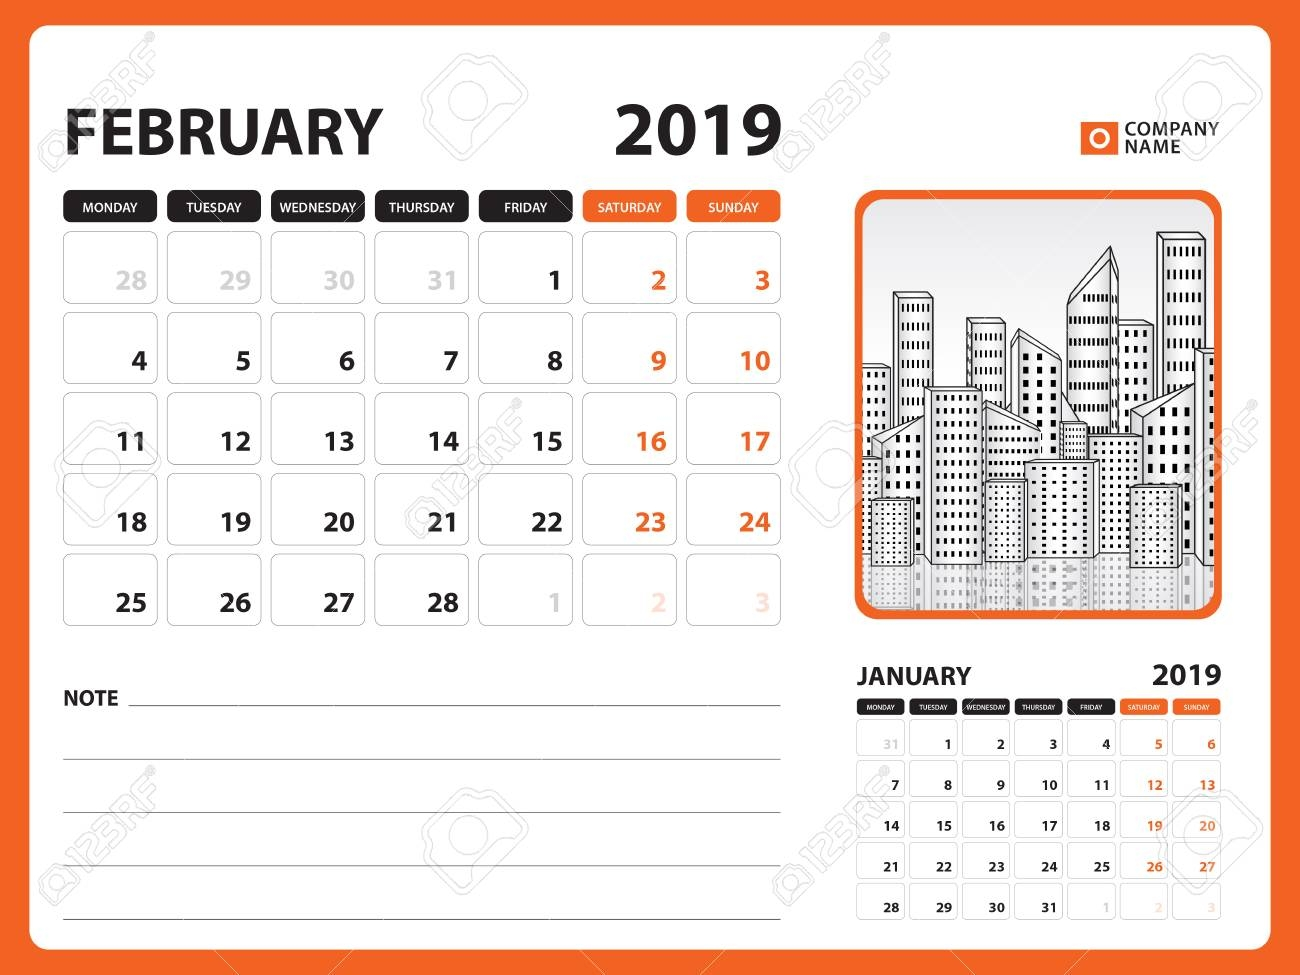 desk calendar for february 2019 template printable calendar::February 2019 Calendar Template Printable